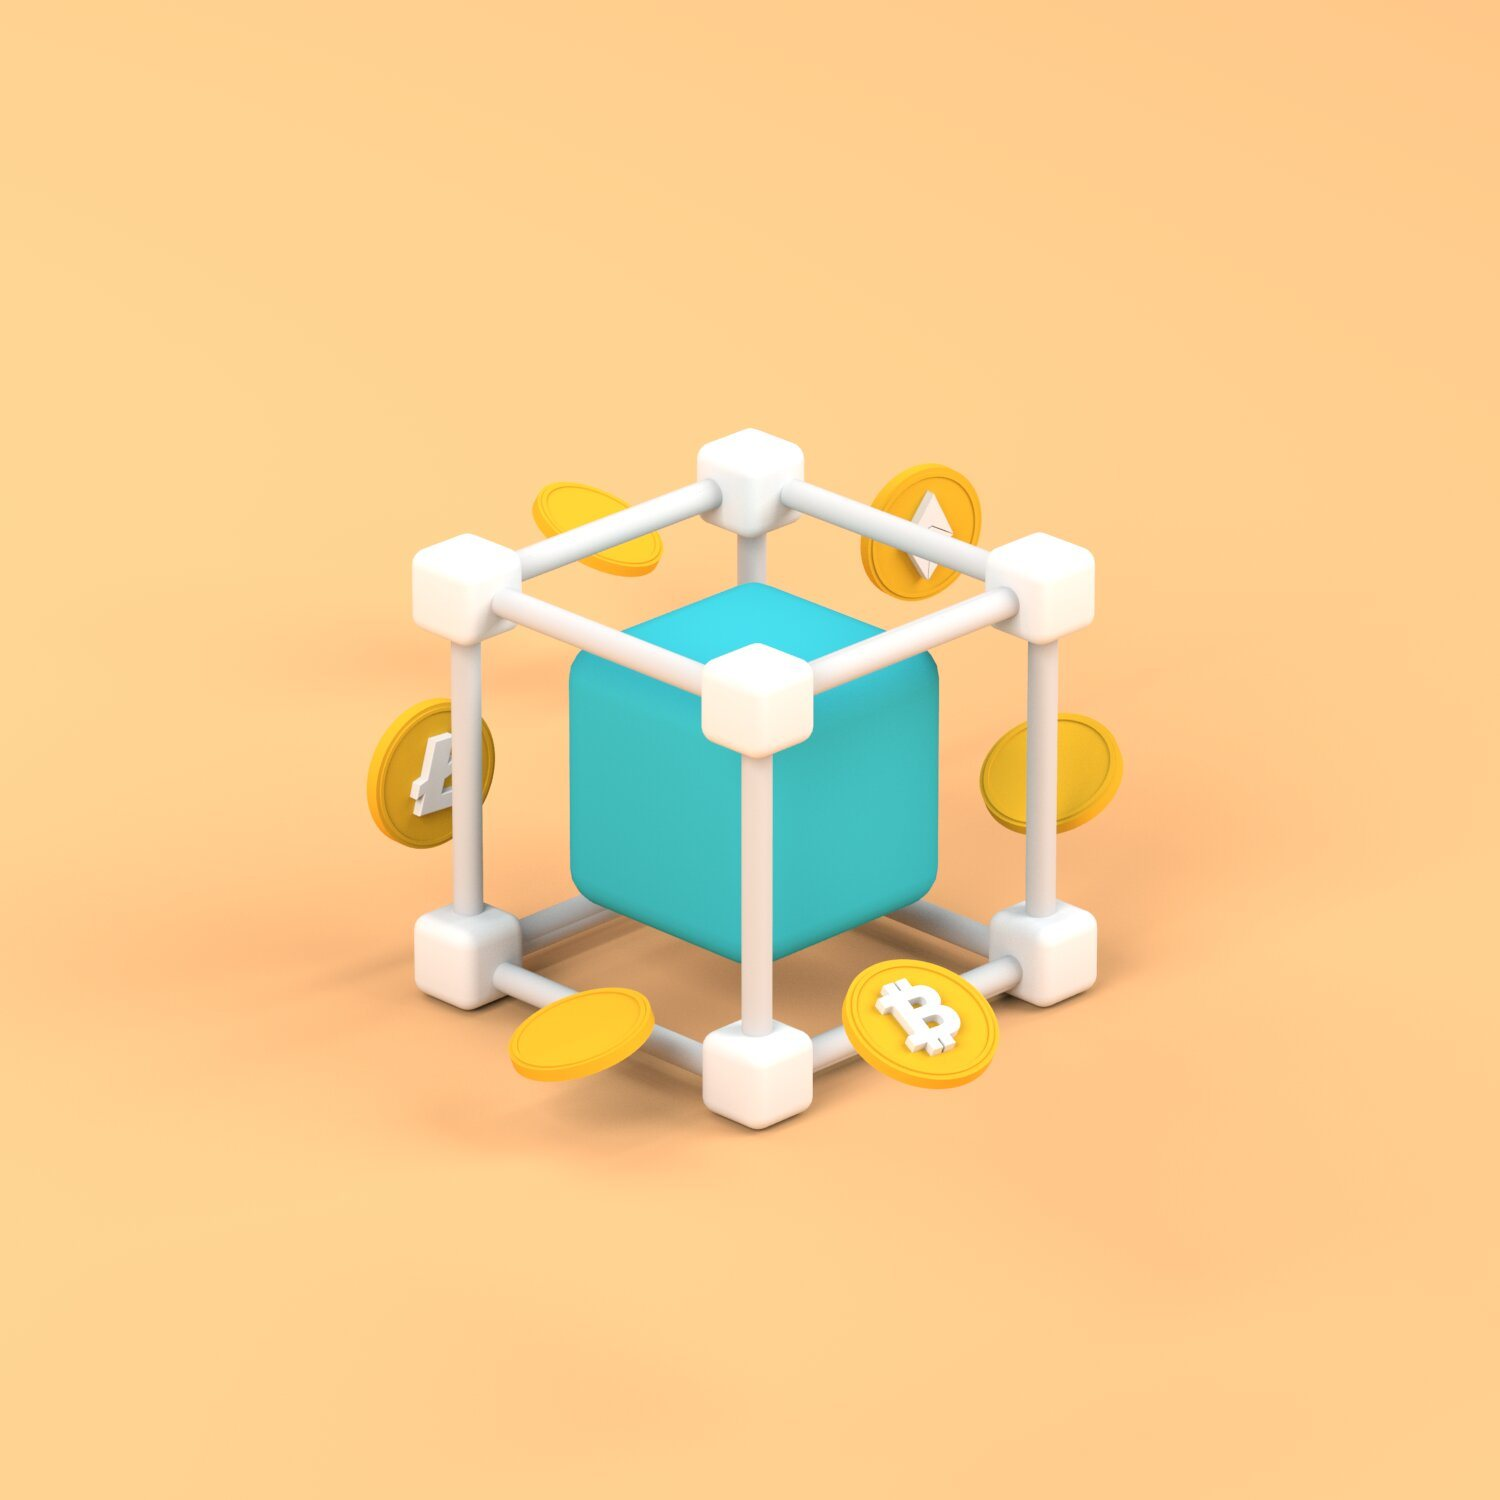 ETH's All-Time High & DeFi's Resurgence: A Data Perspective by IntoTheBlock